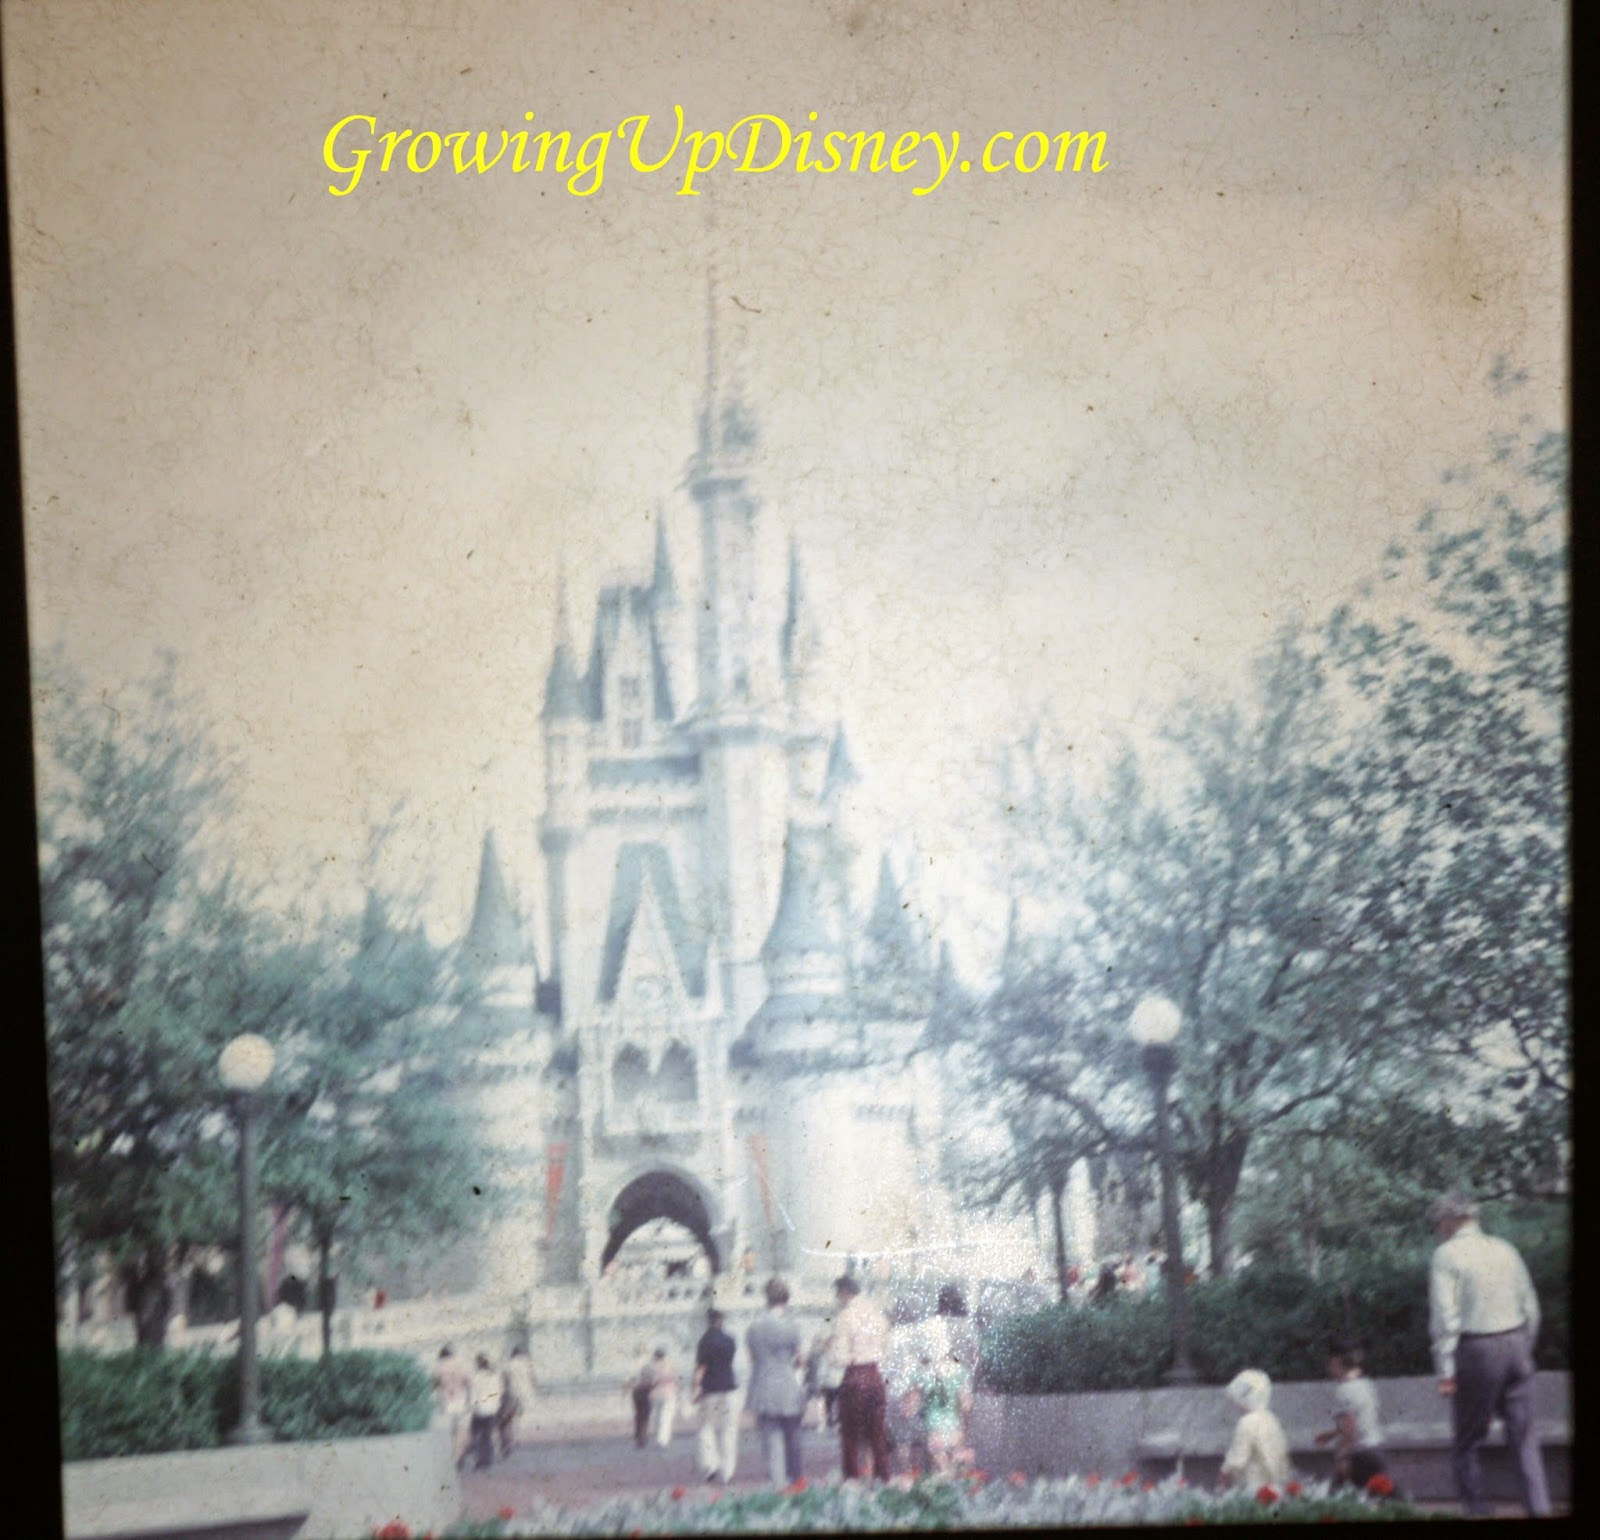 1973 Cinderella Castle in the Magic Kingdom, Walt Disney World, vintage Disney